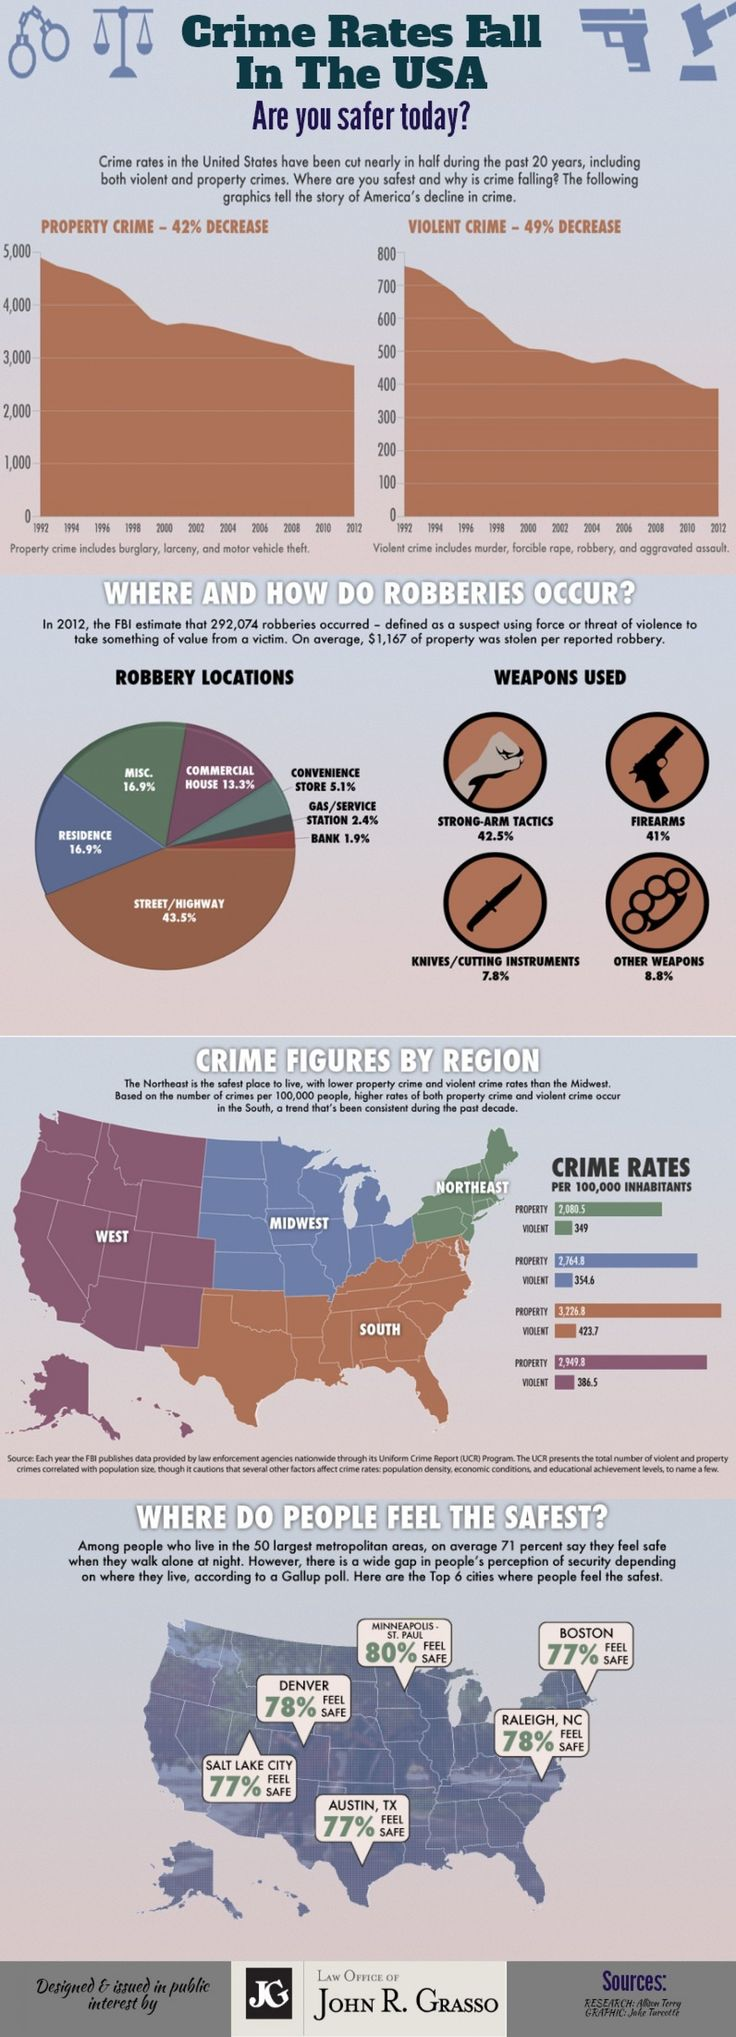 Crime Rates Fall in the USA Infographic